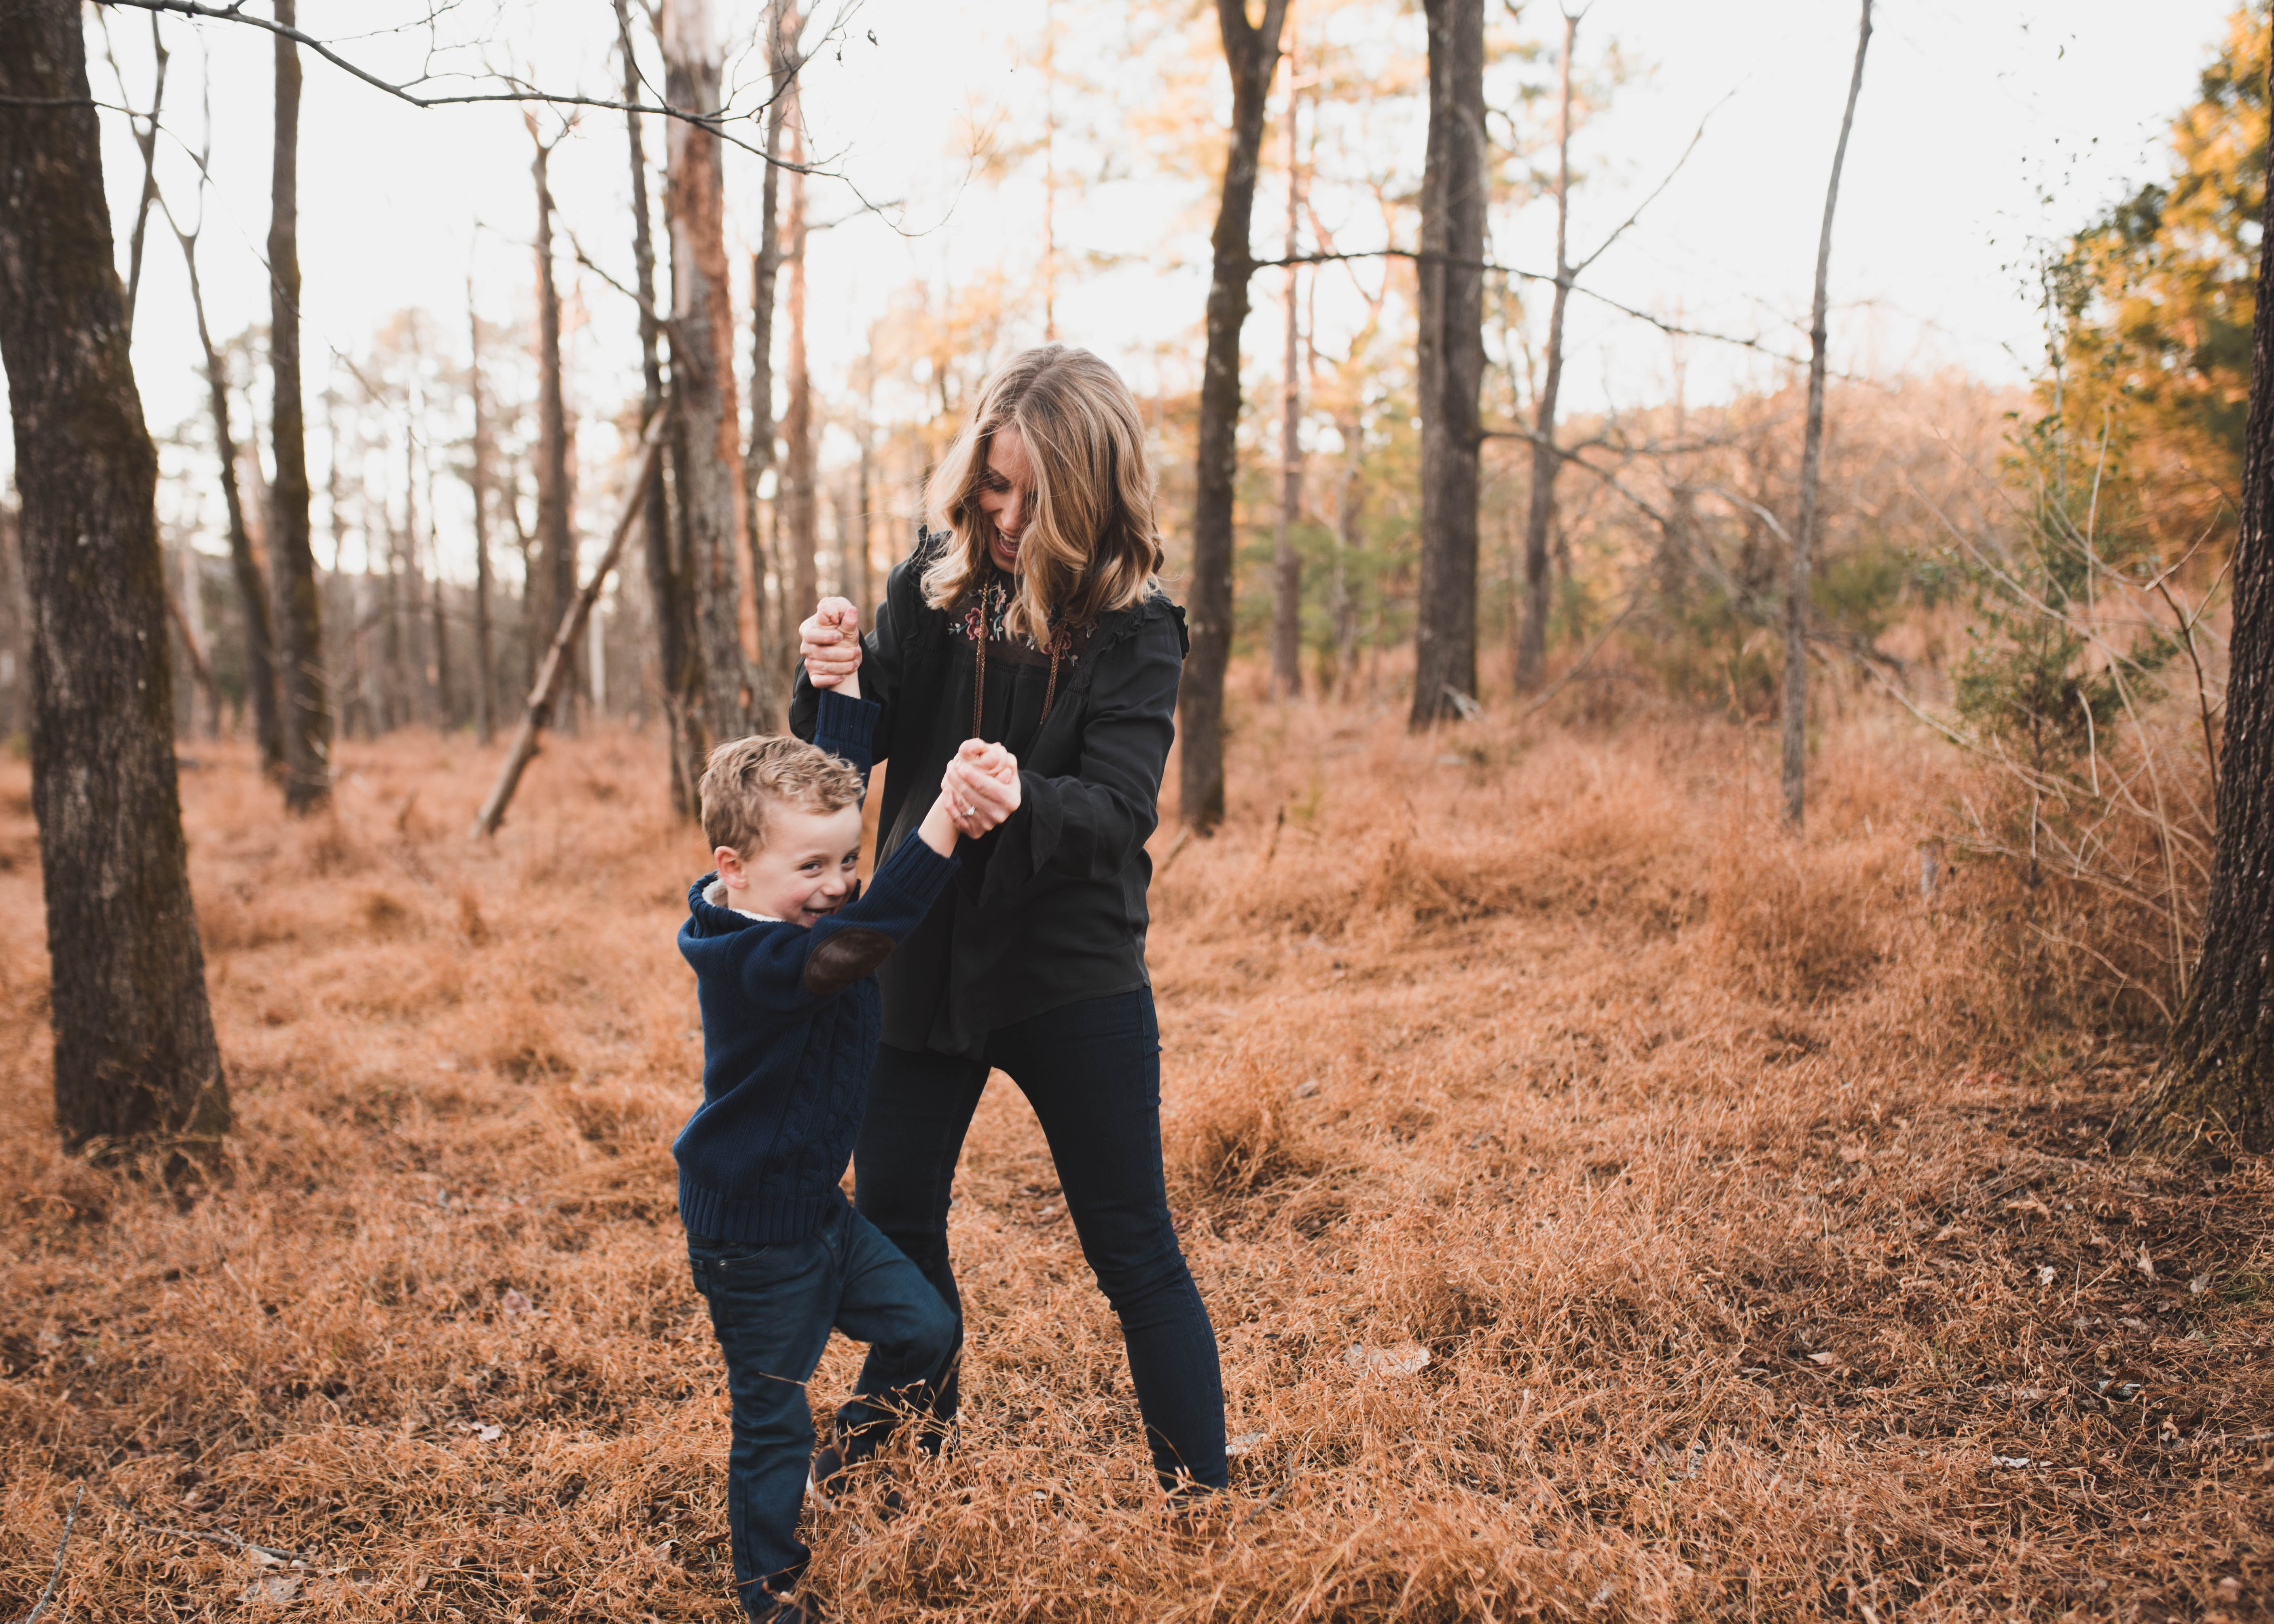 Woman wearing black jacket playing with young boy photo